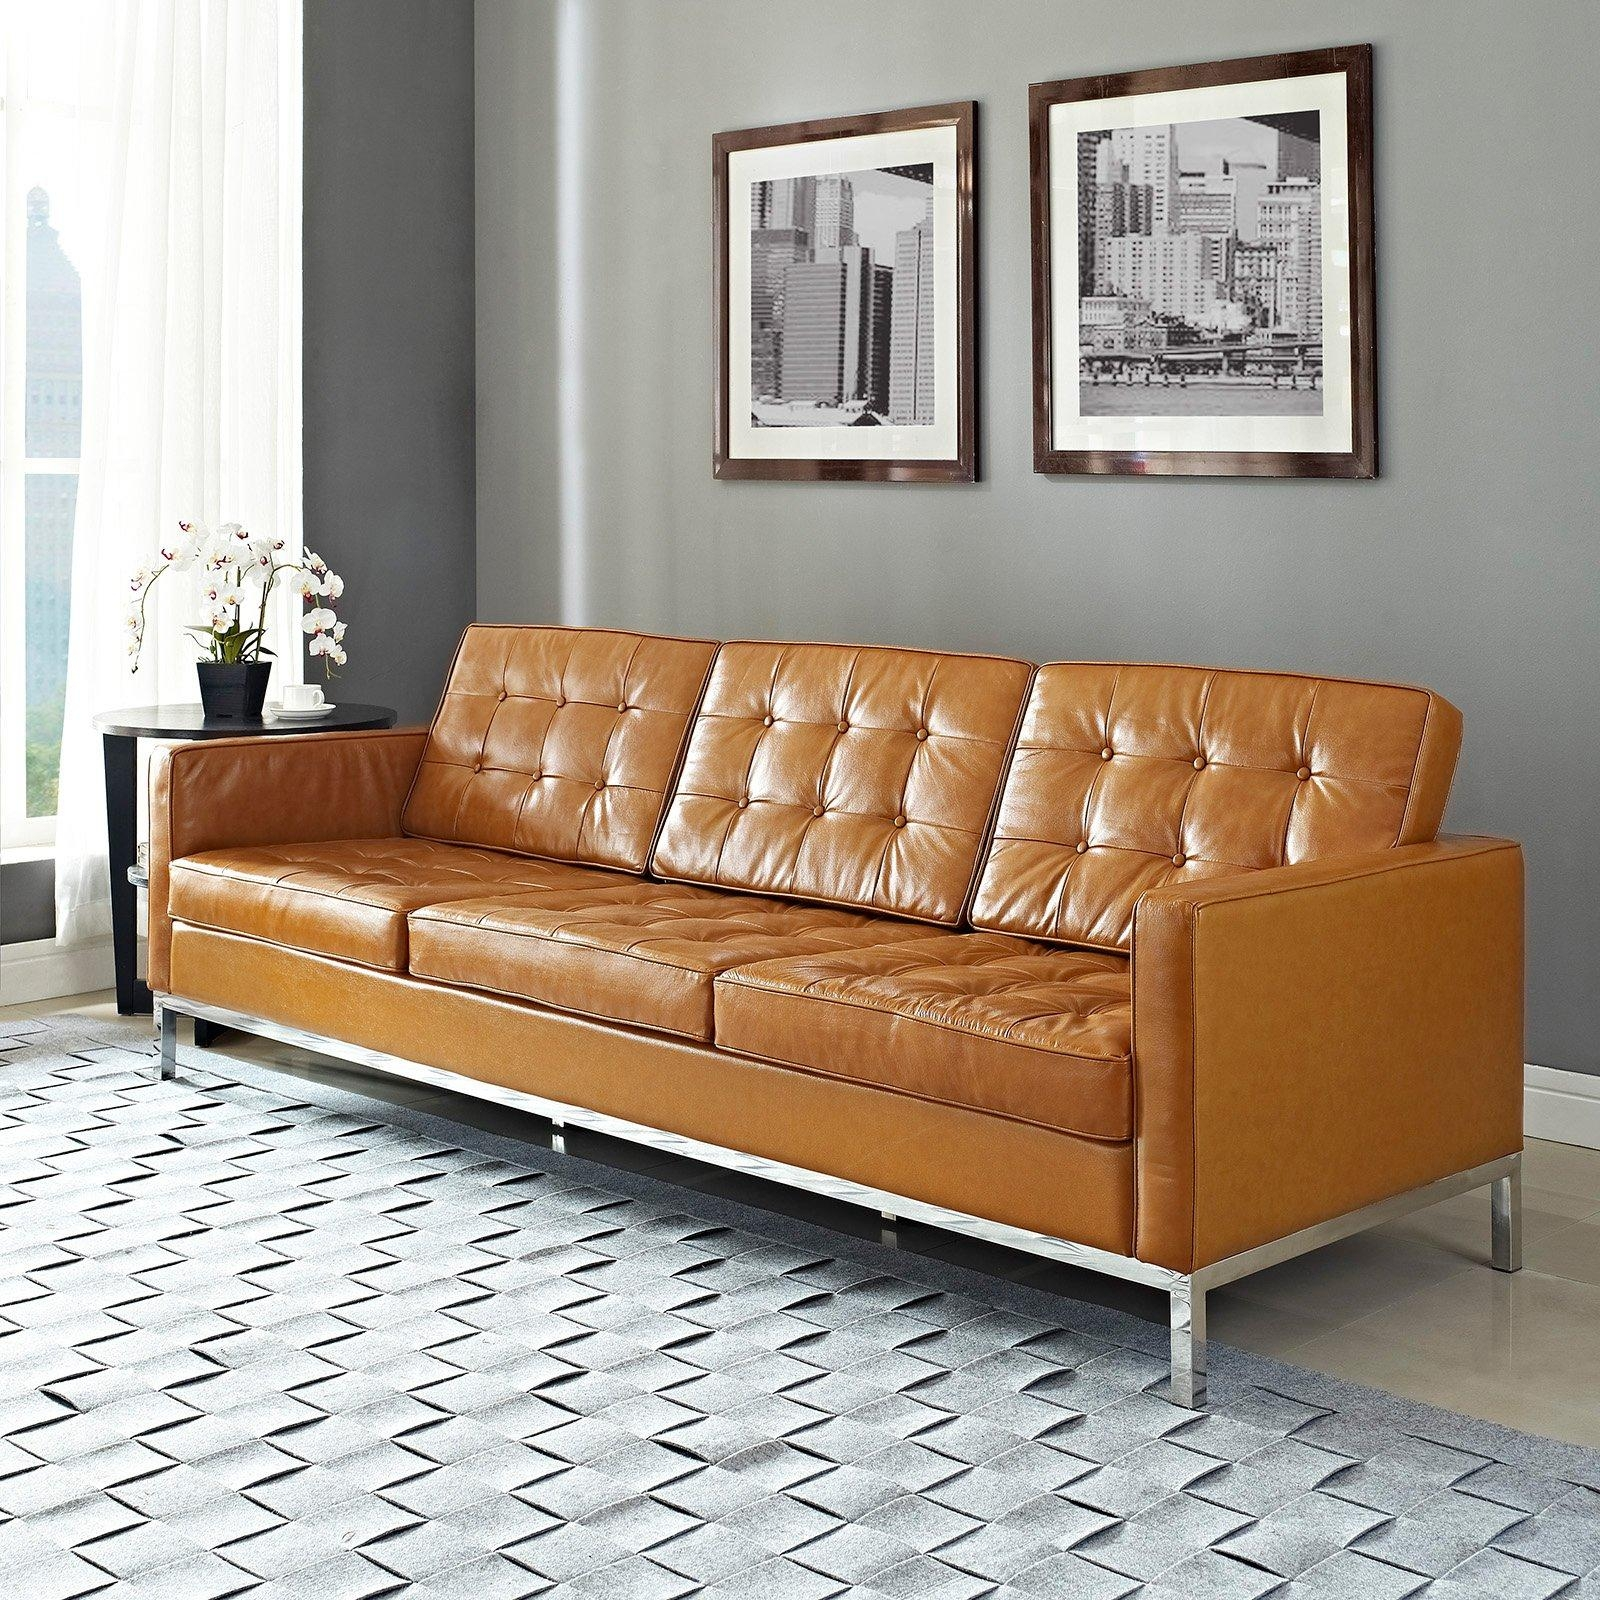 Modway Loft Leather Sofa | Hayneedle For Florence Leather Sofas (View 2 of 20)